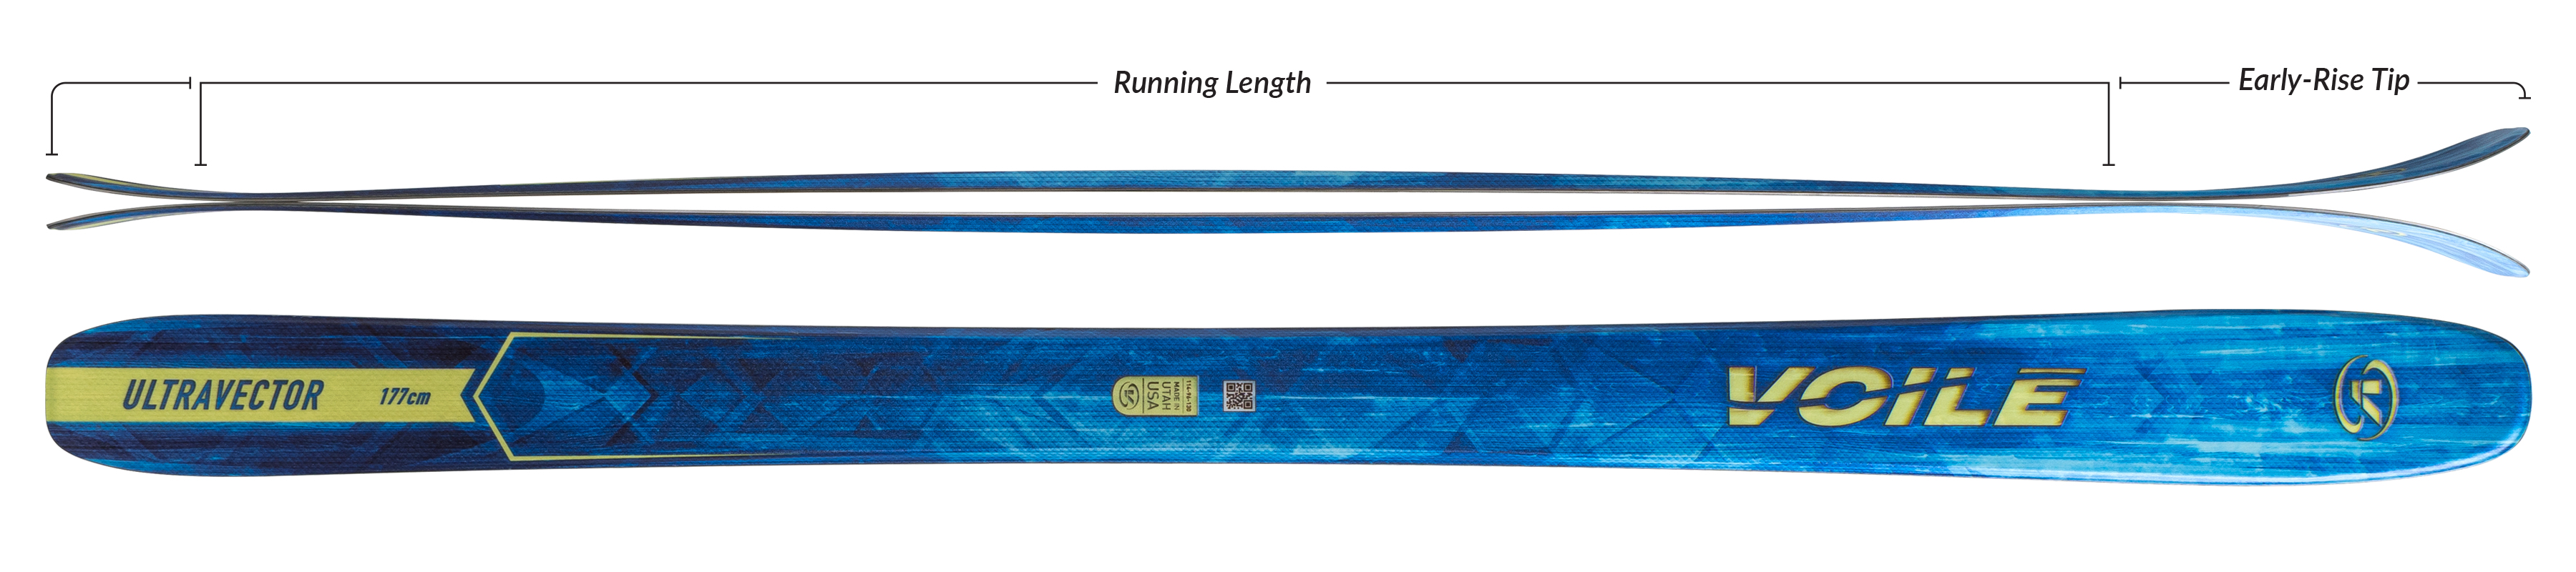 Voile UltraVector Skis Camber Profile